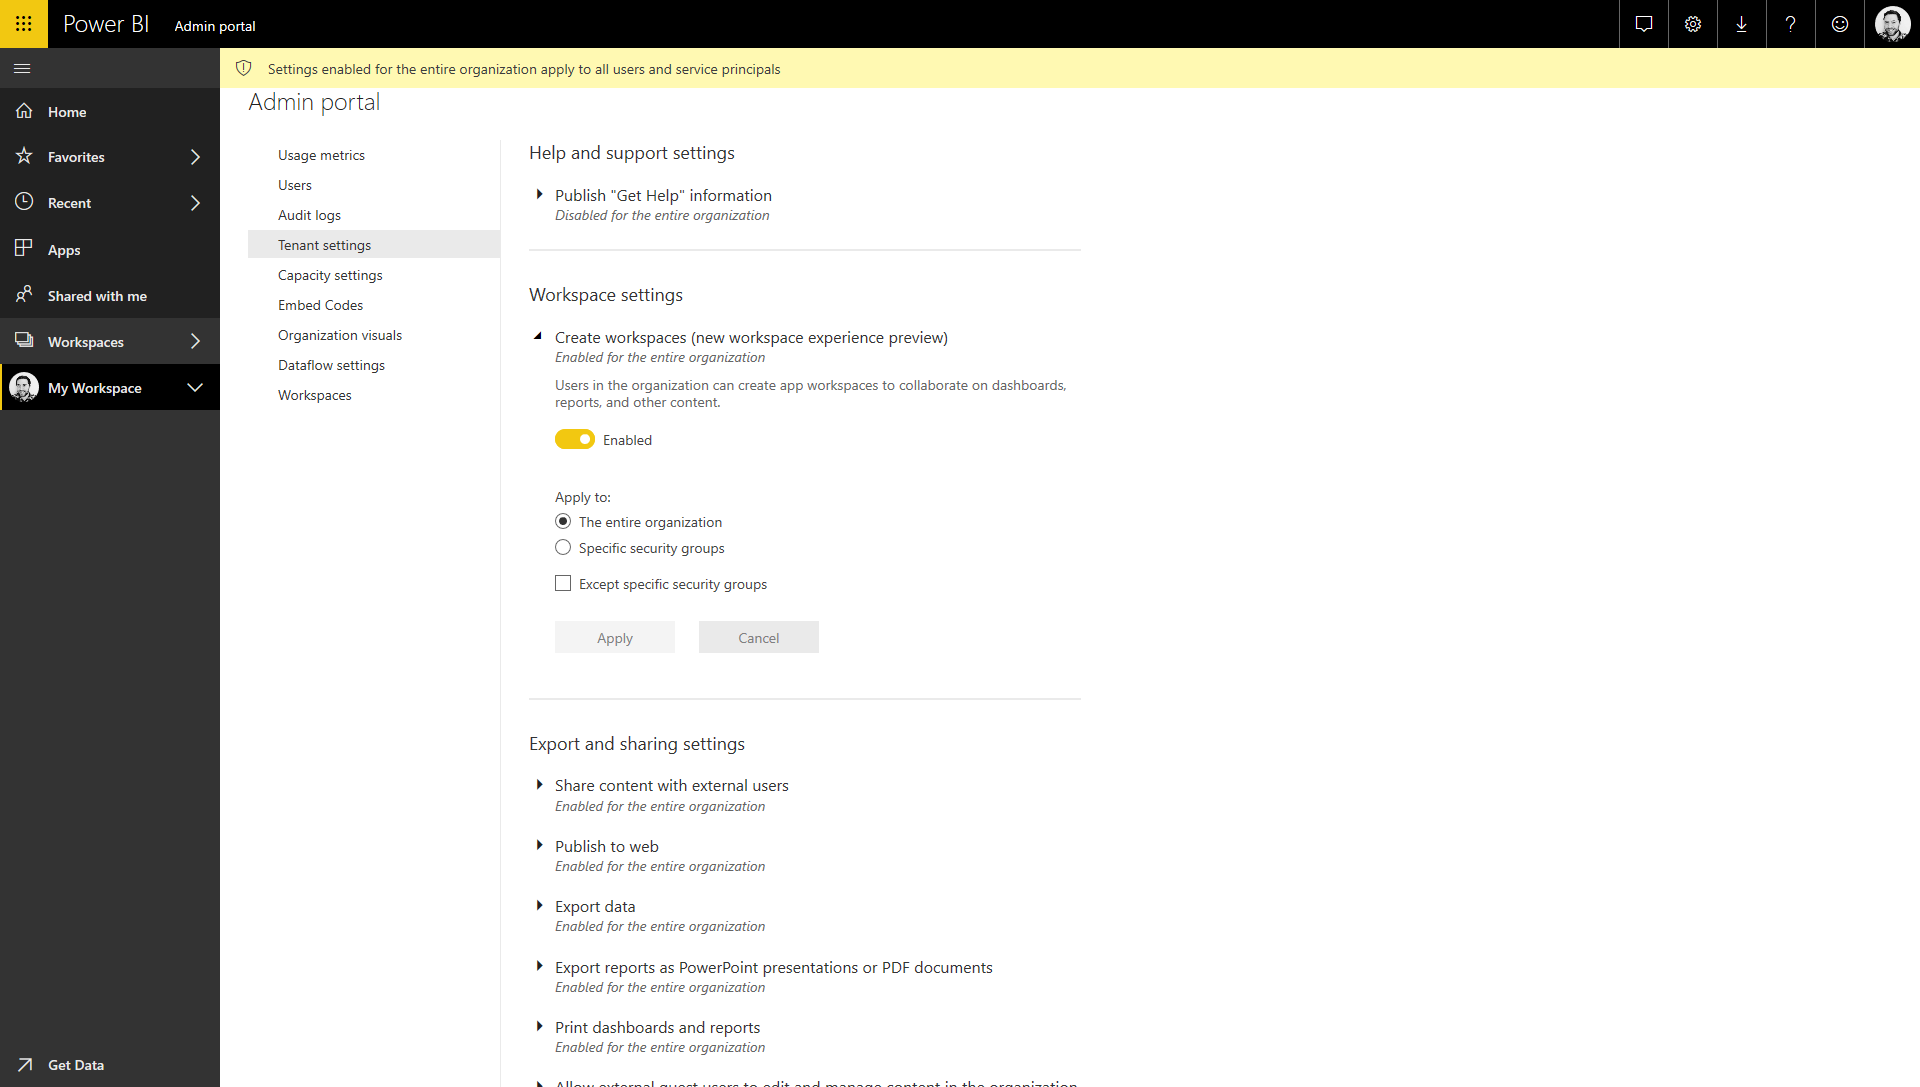 Power BI Workspace Settings